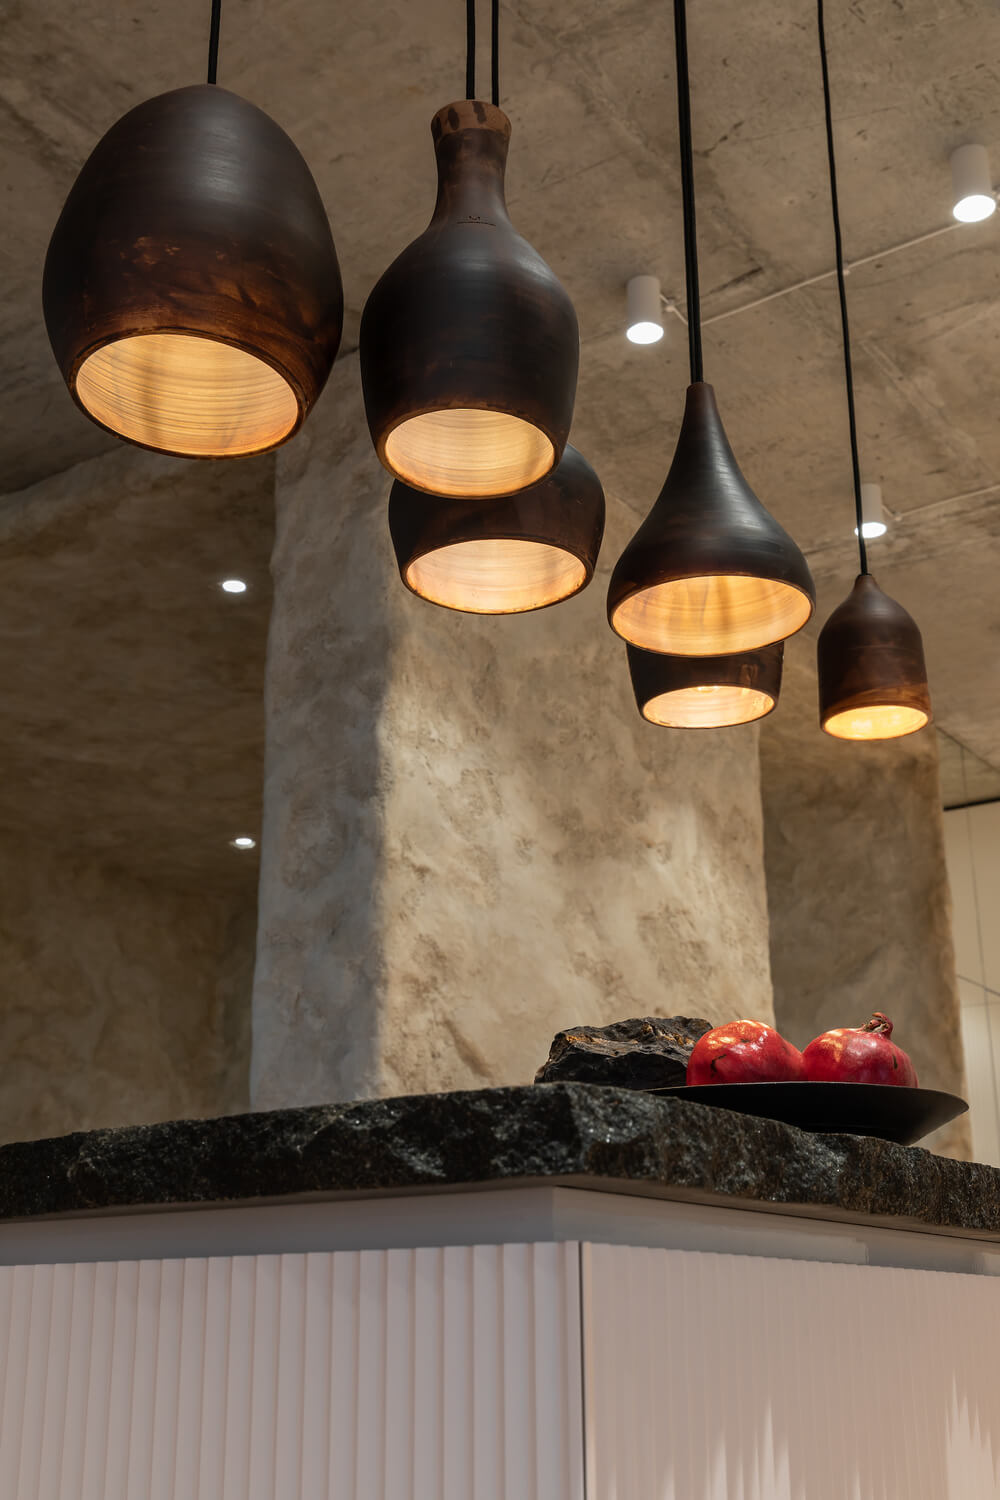 The kitchen island is topped with a collection of black pendant lights hanging from the concrete ceiling.